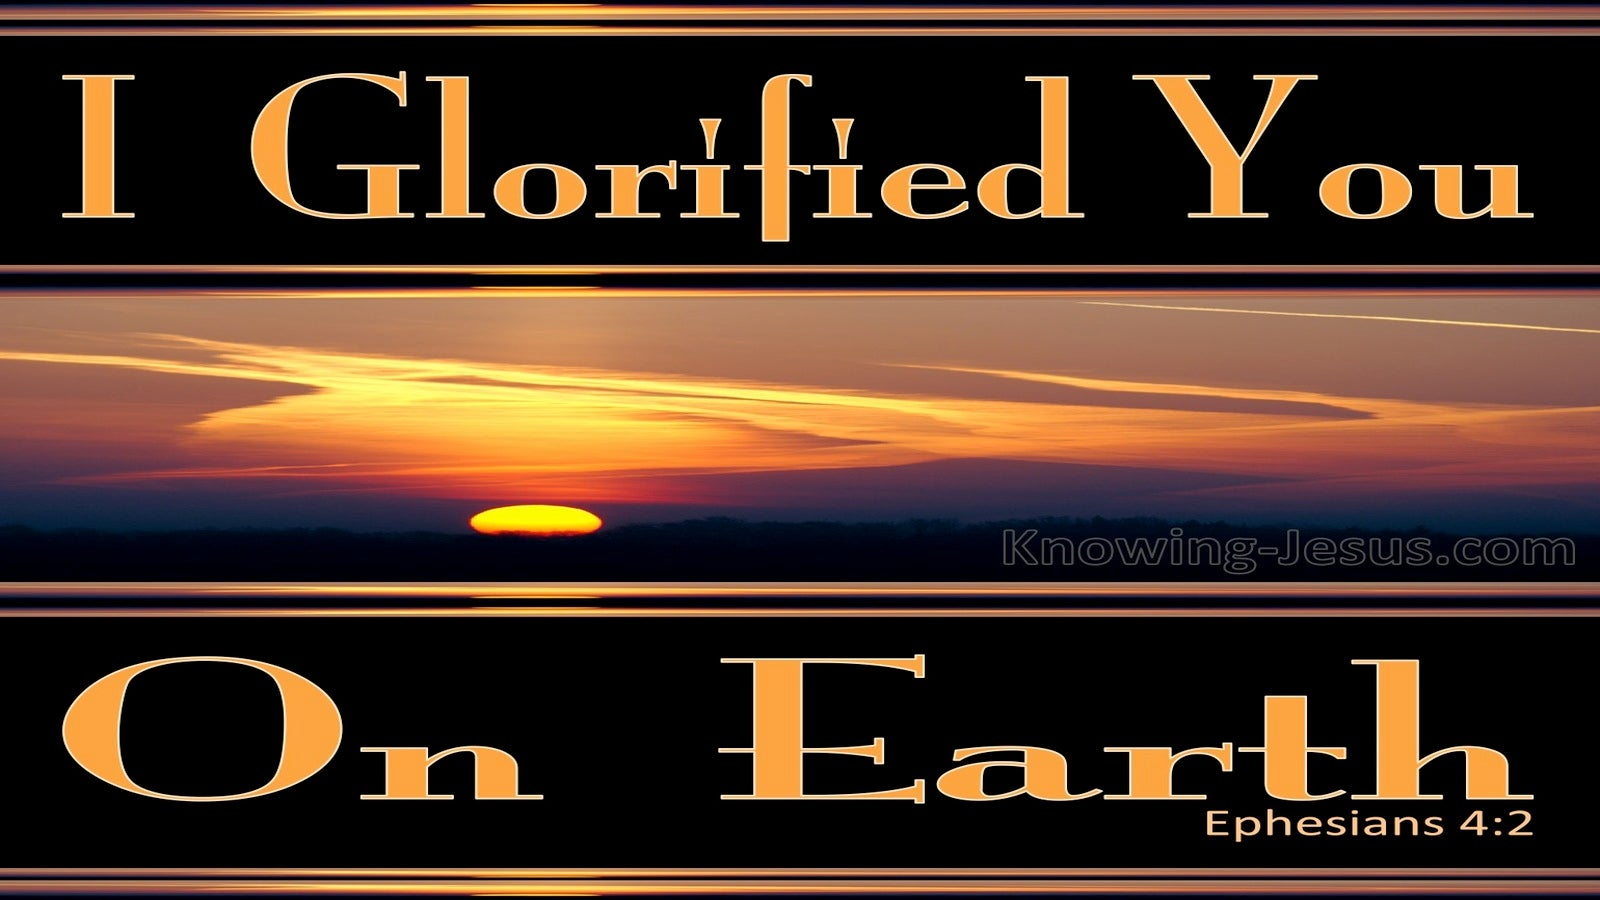 John 17:4 I Have Glorified You (black)